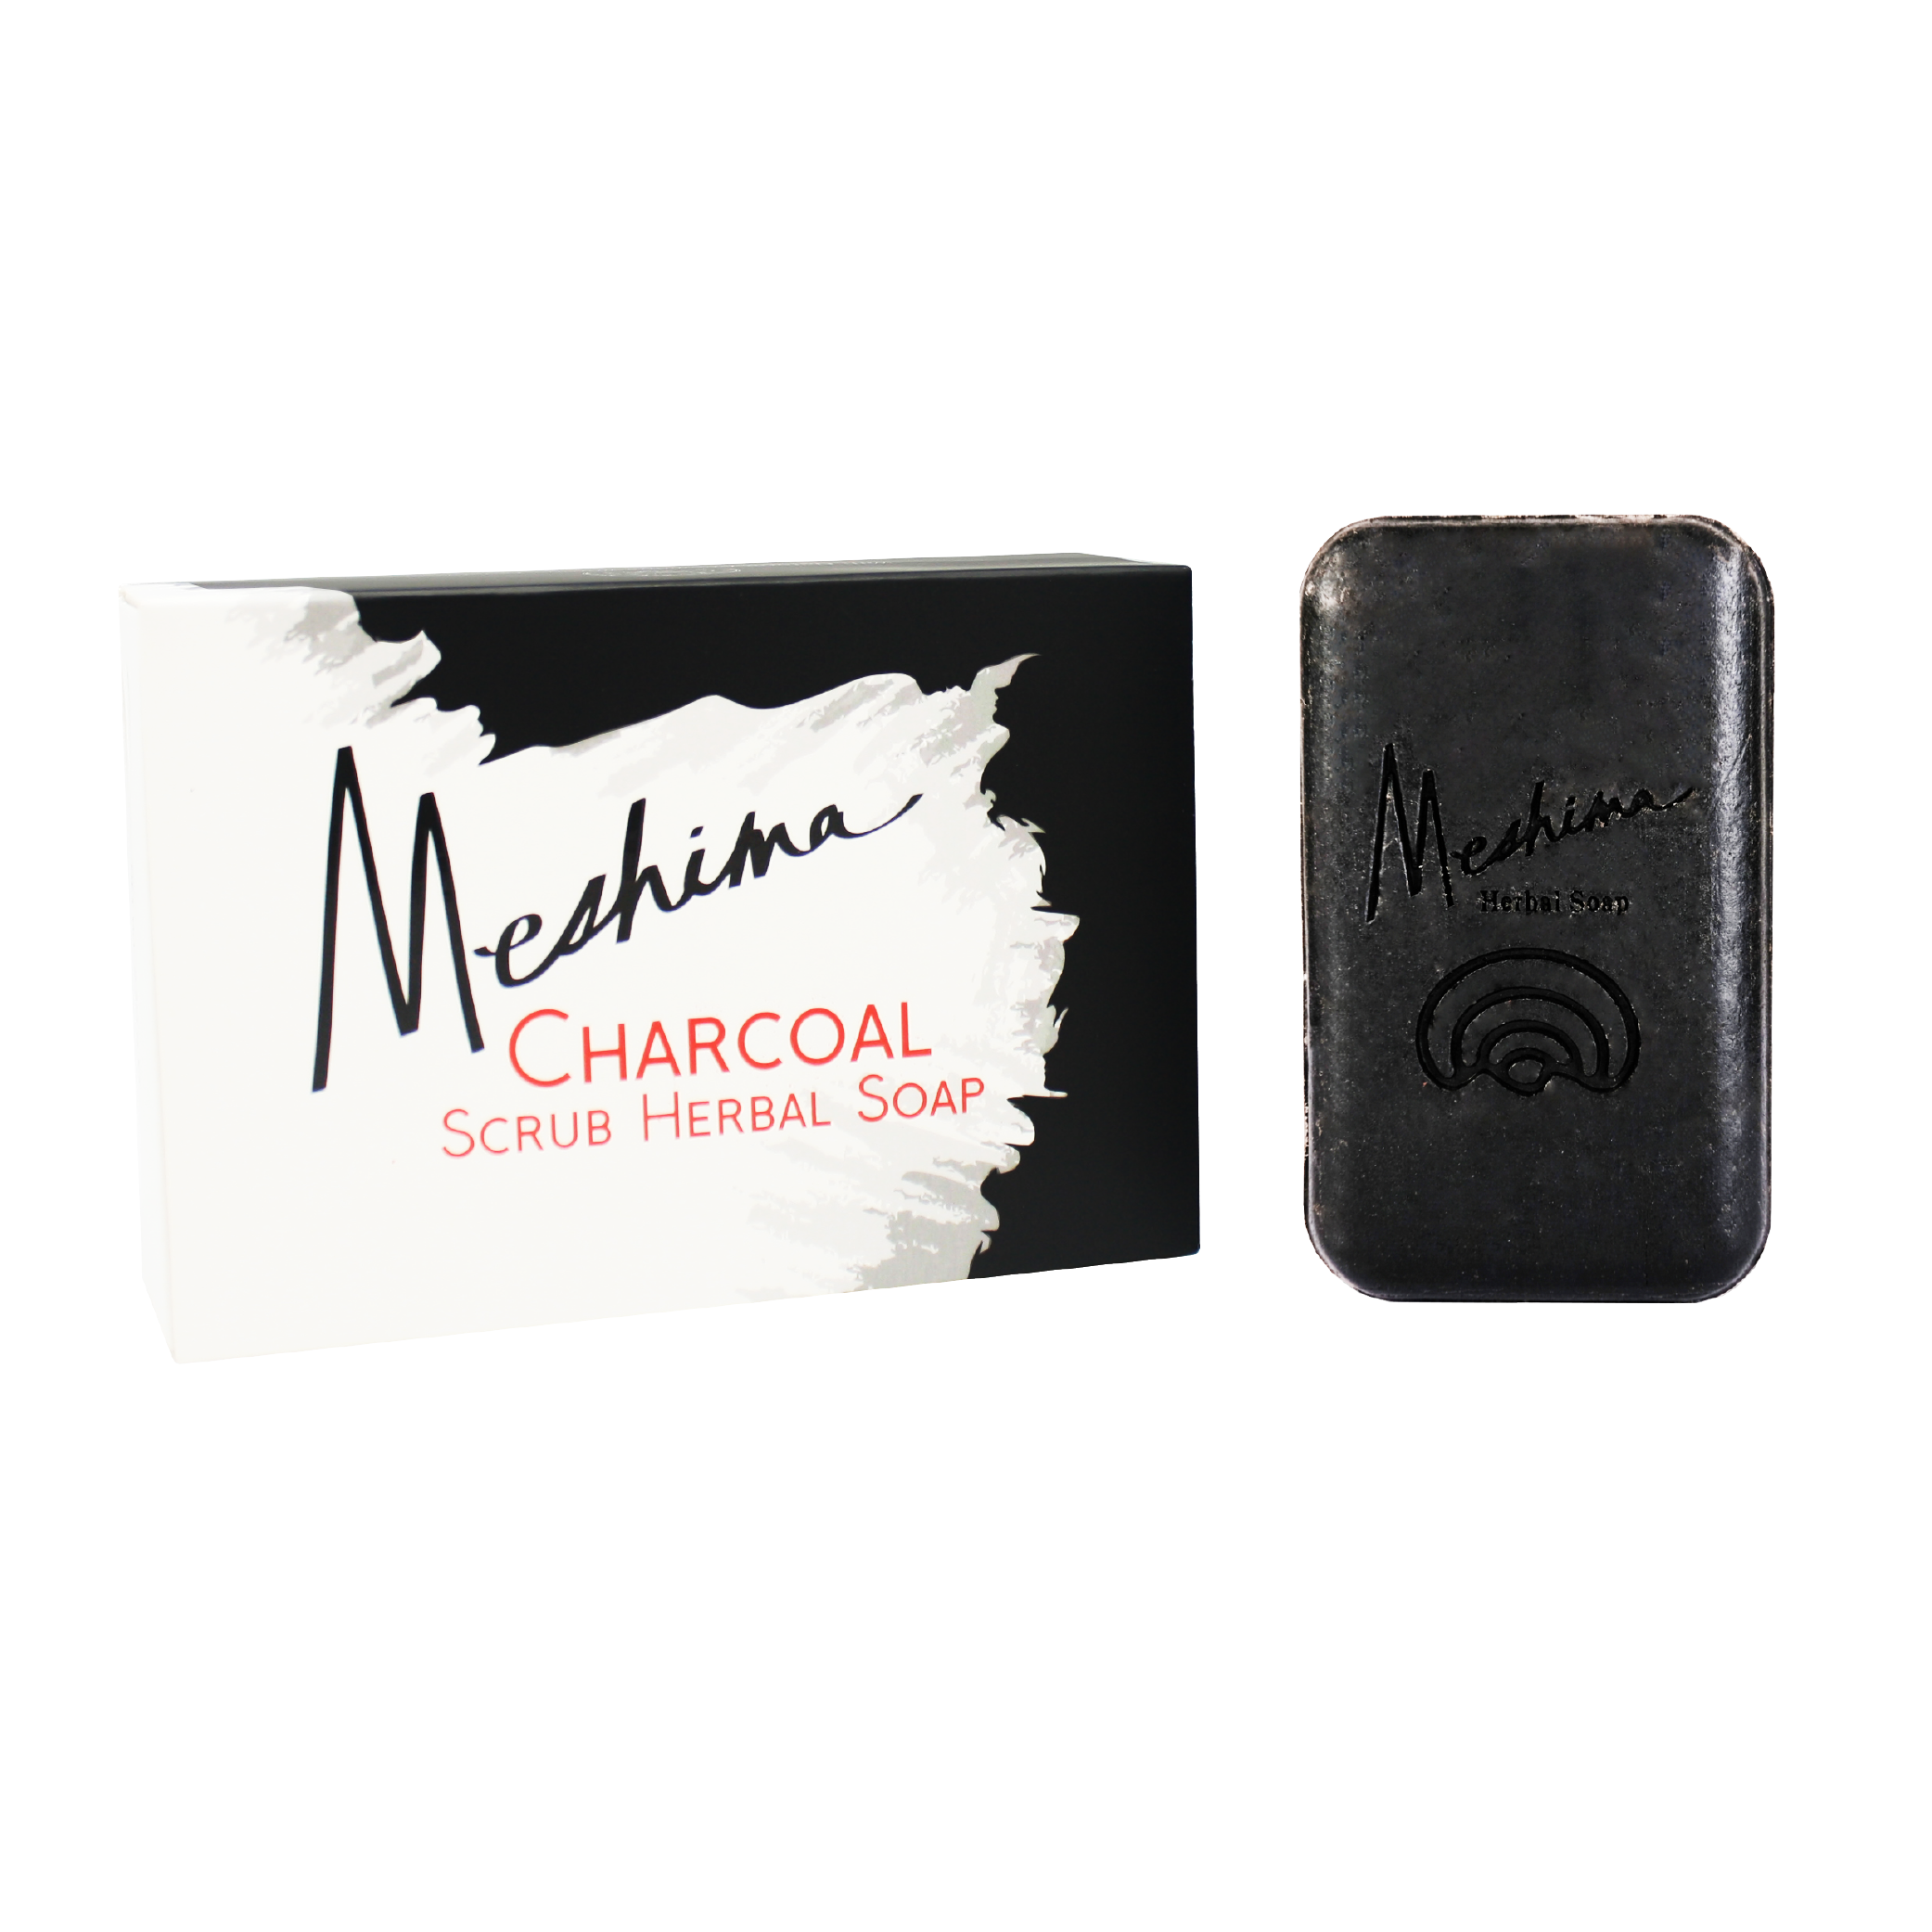 Meshima Charcoal Scrub Herbal Soap